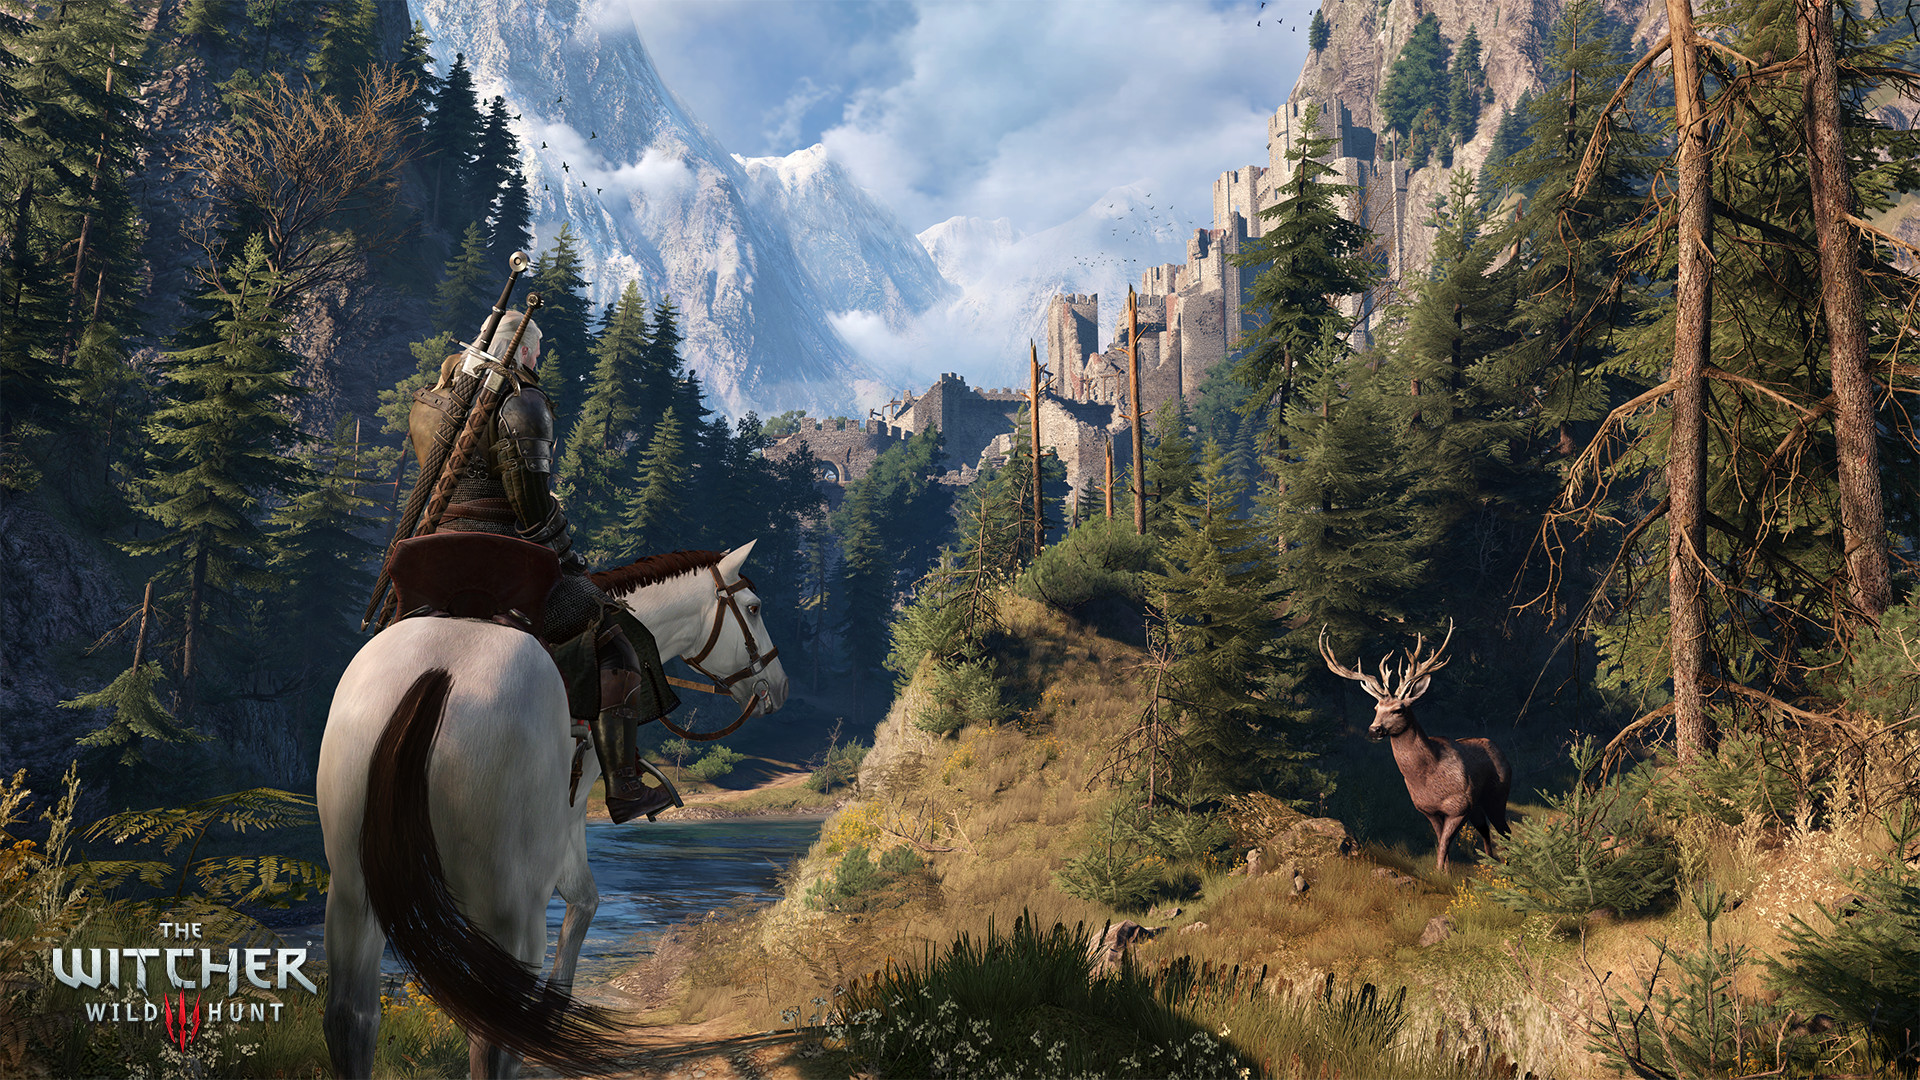 All of The Witcher 3's free DLC is now available, including New Game+ mode